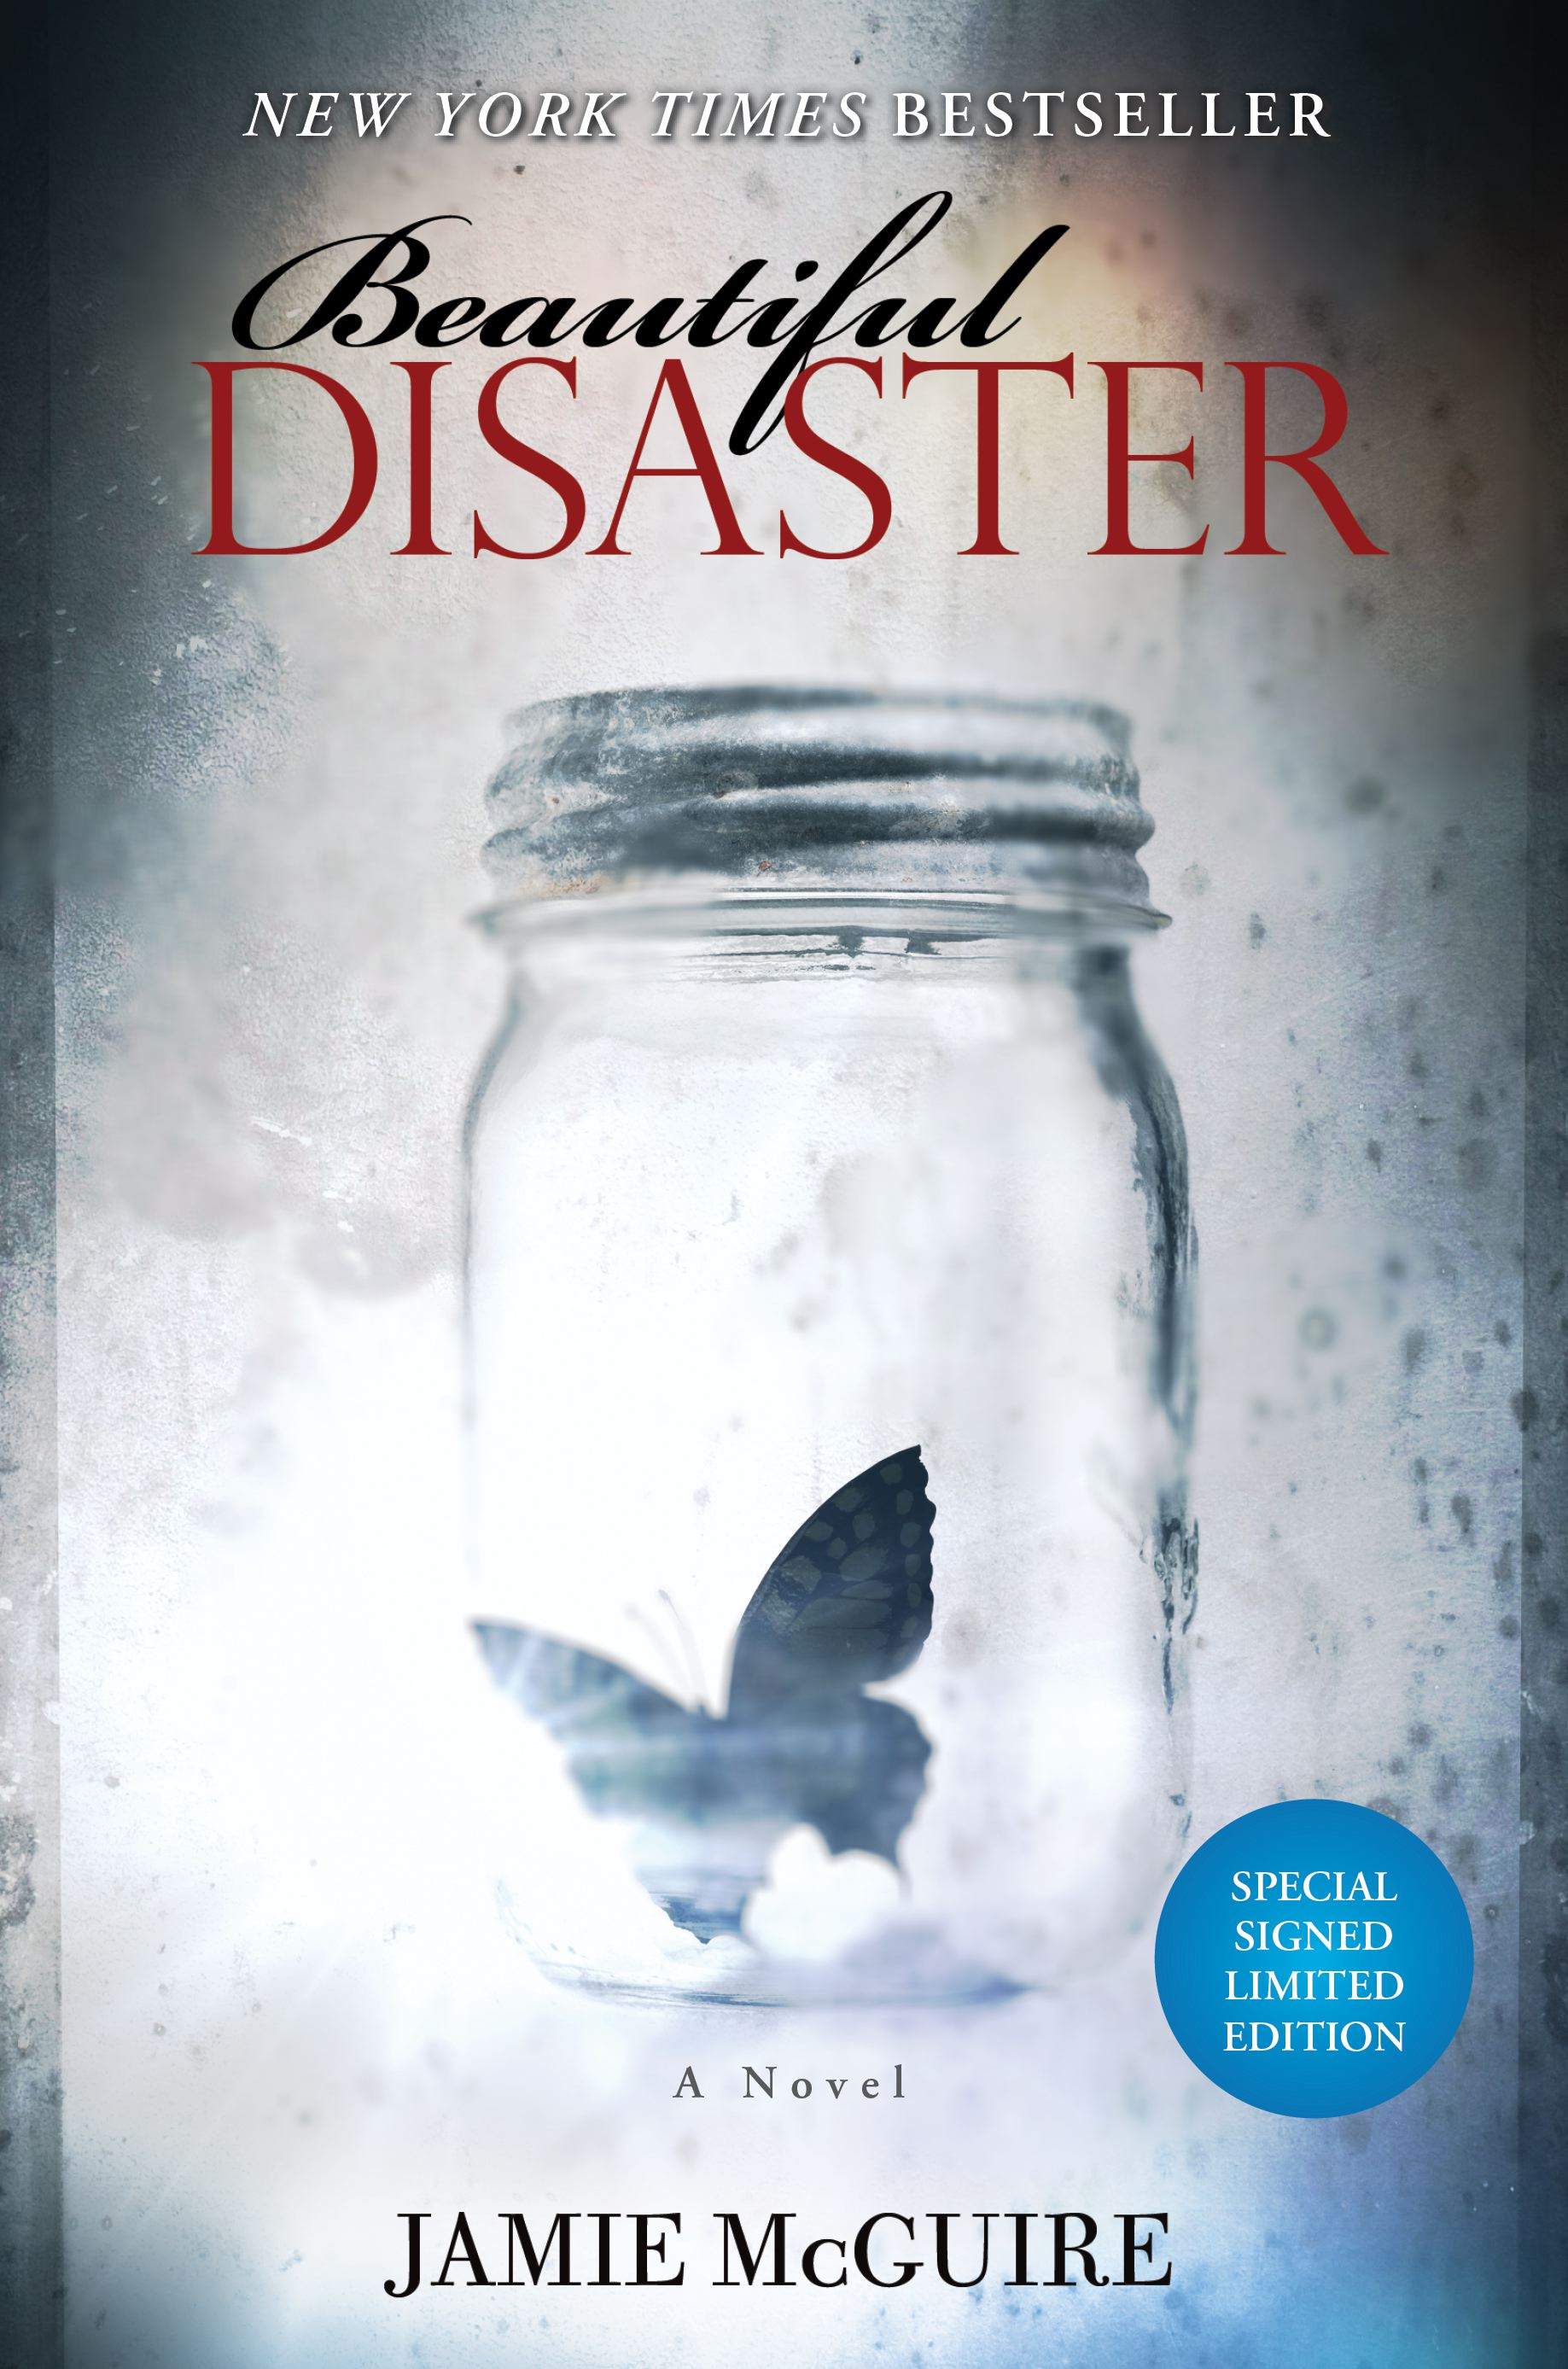 Beautiful-disaster-signed-limited-edition-9781476719078_hr